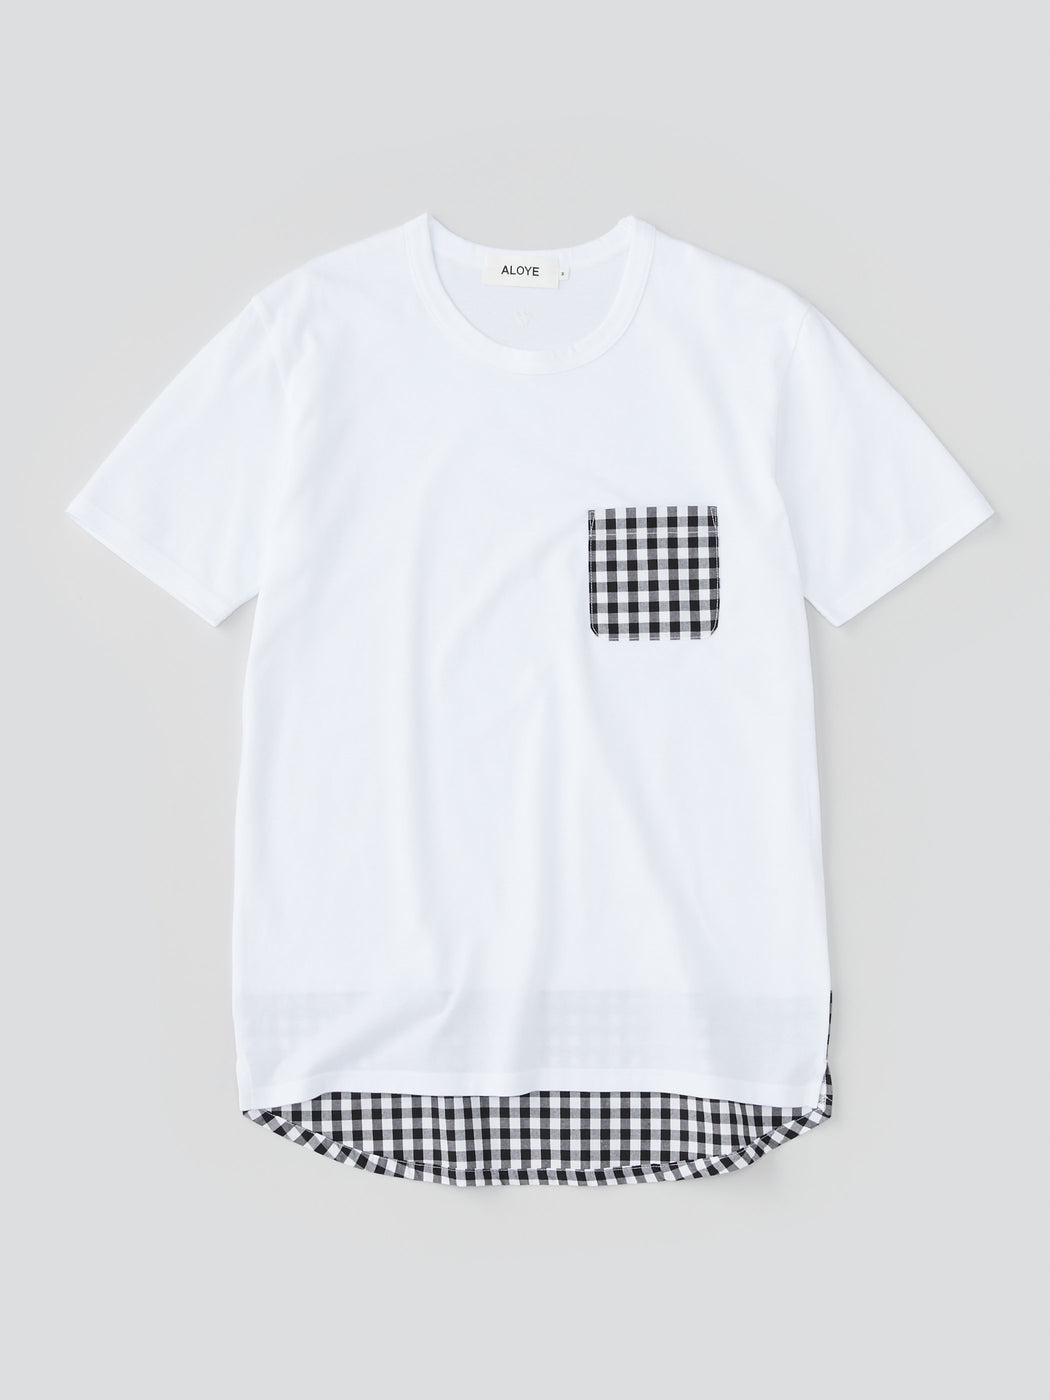 ALOYE Shirt Fabrics Men's Short Sleeve T-shirt White-Black Gingham Pocket